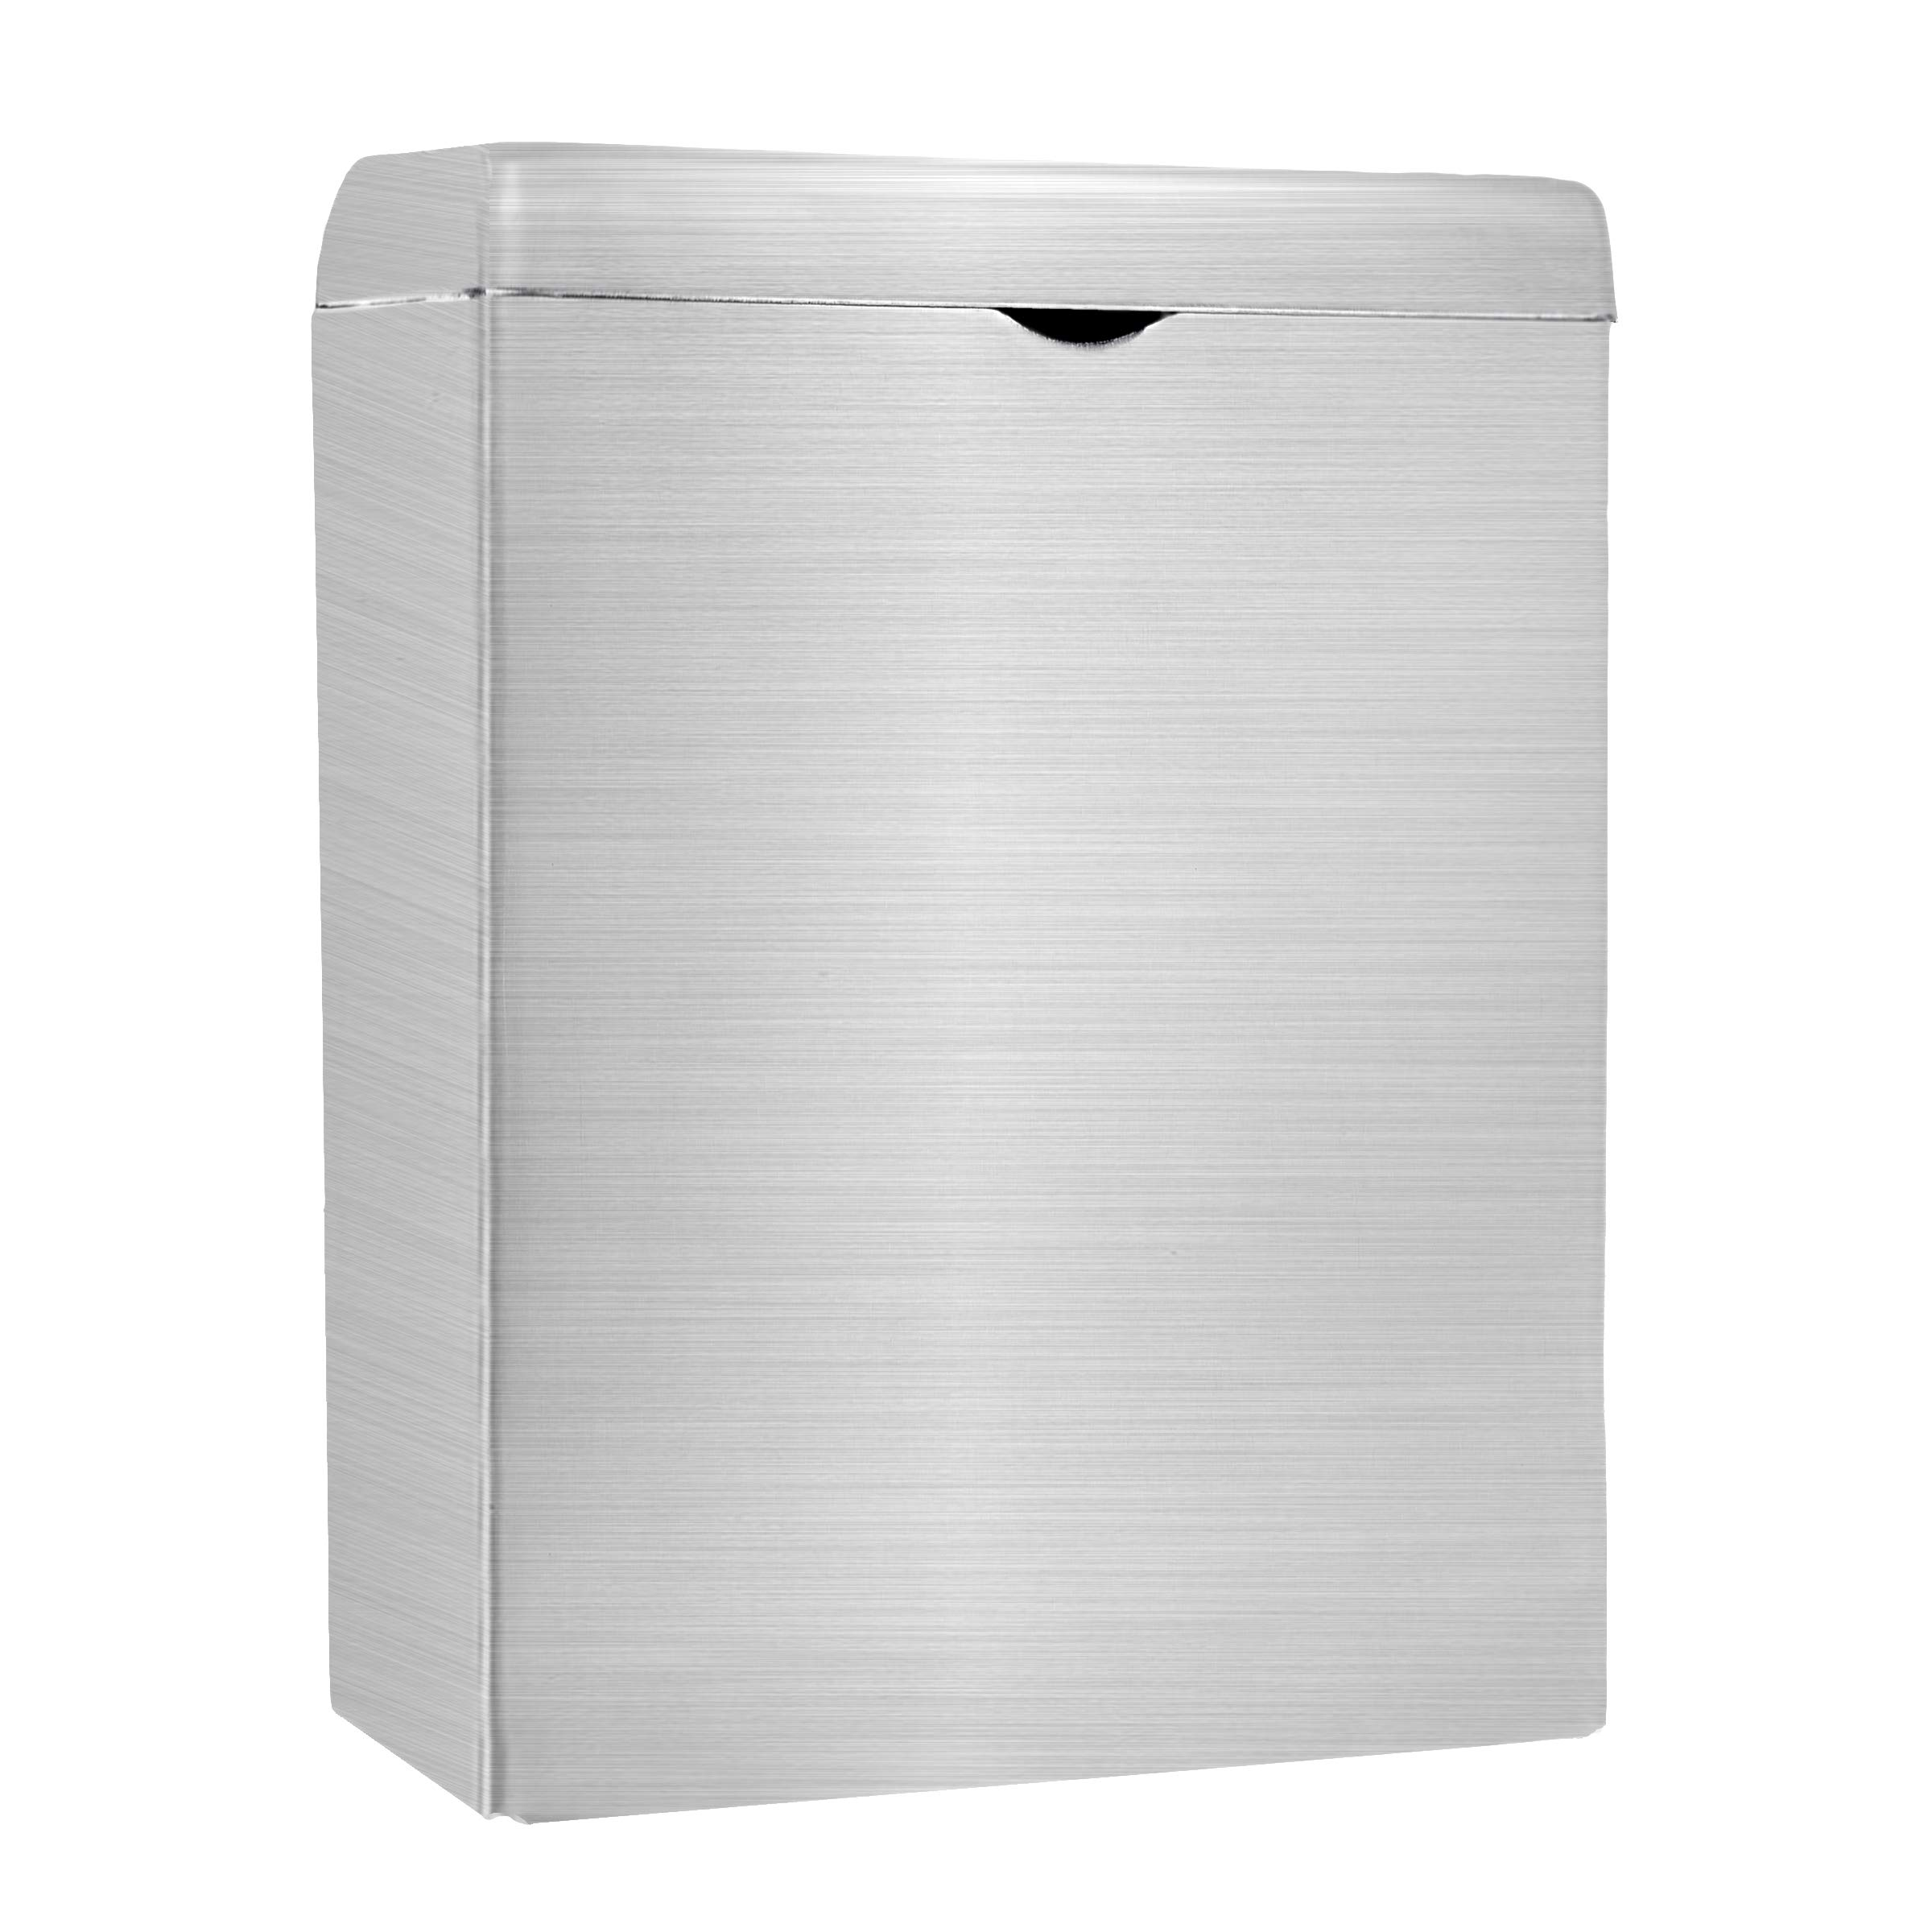 Alpine Industries Sanitary Napkin Receptacle - Easy Install, Wall Mounted Container - Provides Clean & Odor-Free Restroom for Home & Public Restrooms by Alpine